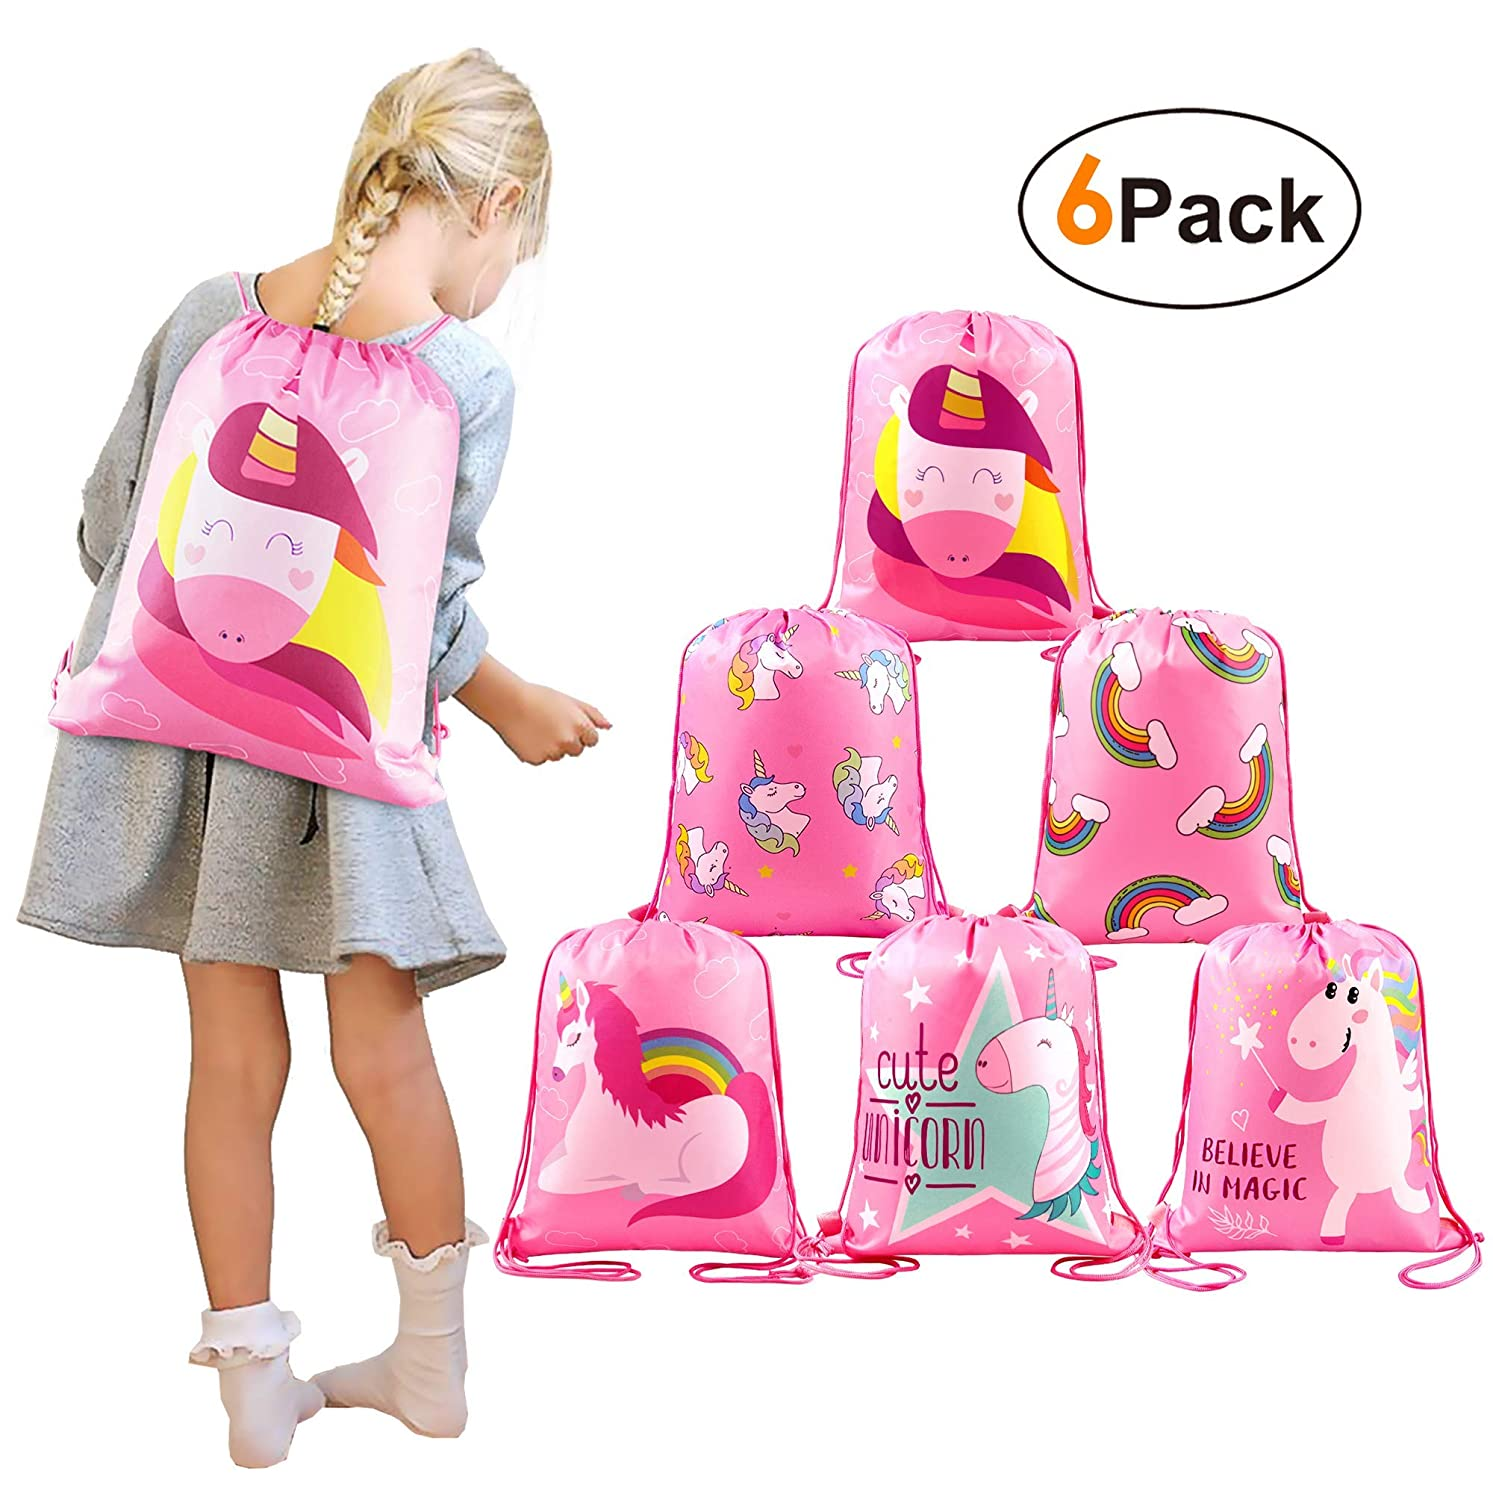 BeeGreen Unicorn-Party-Bags-Drawstring-Backpacks 6pcs for Girls Unicorn Birthday Party, Pull String Give Aways Goodie Bags for Party Favours, Girls Swim PE Bags